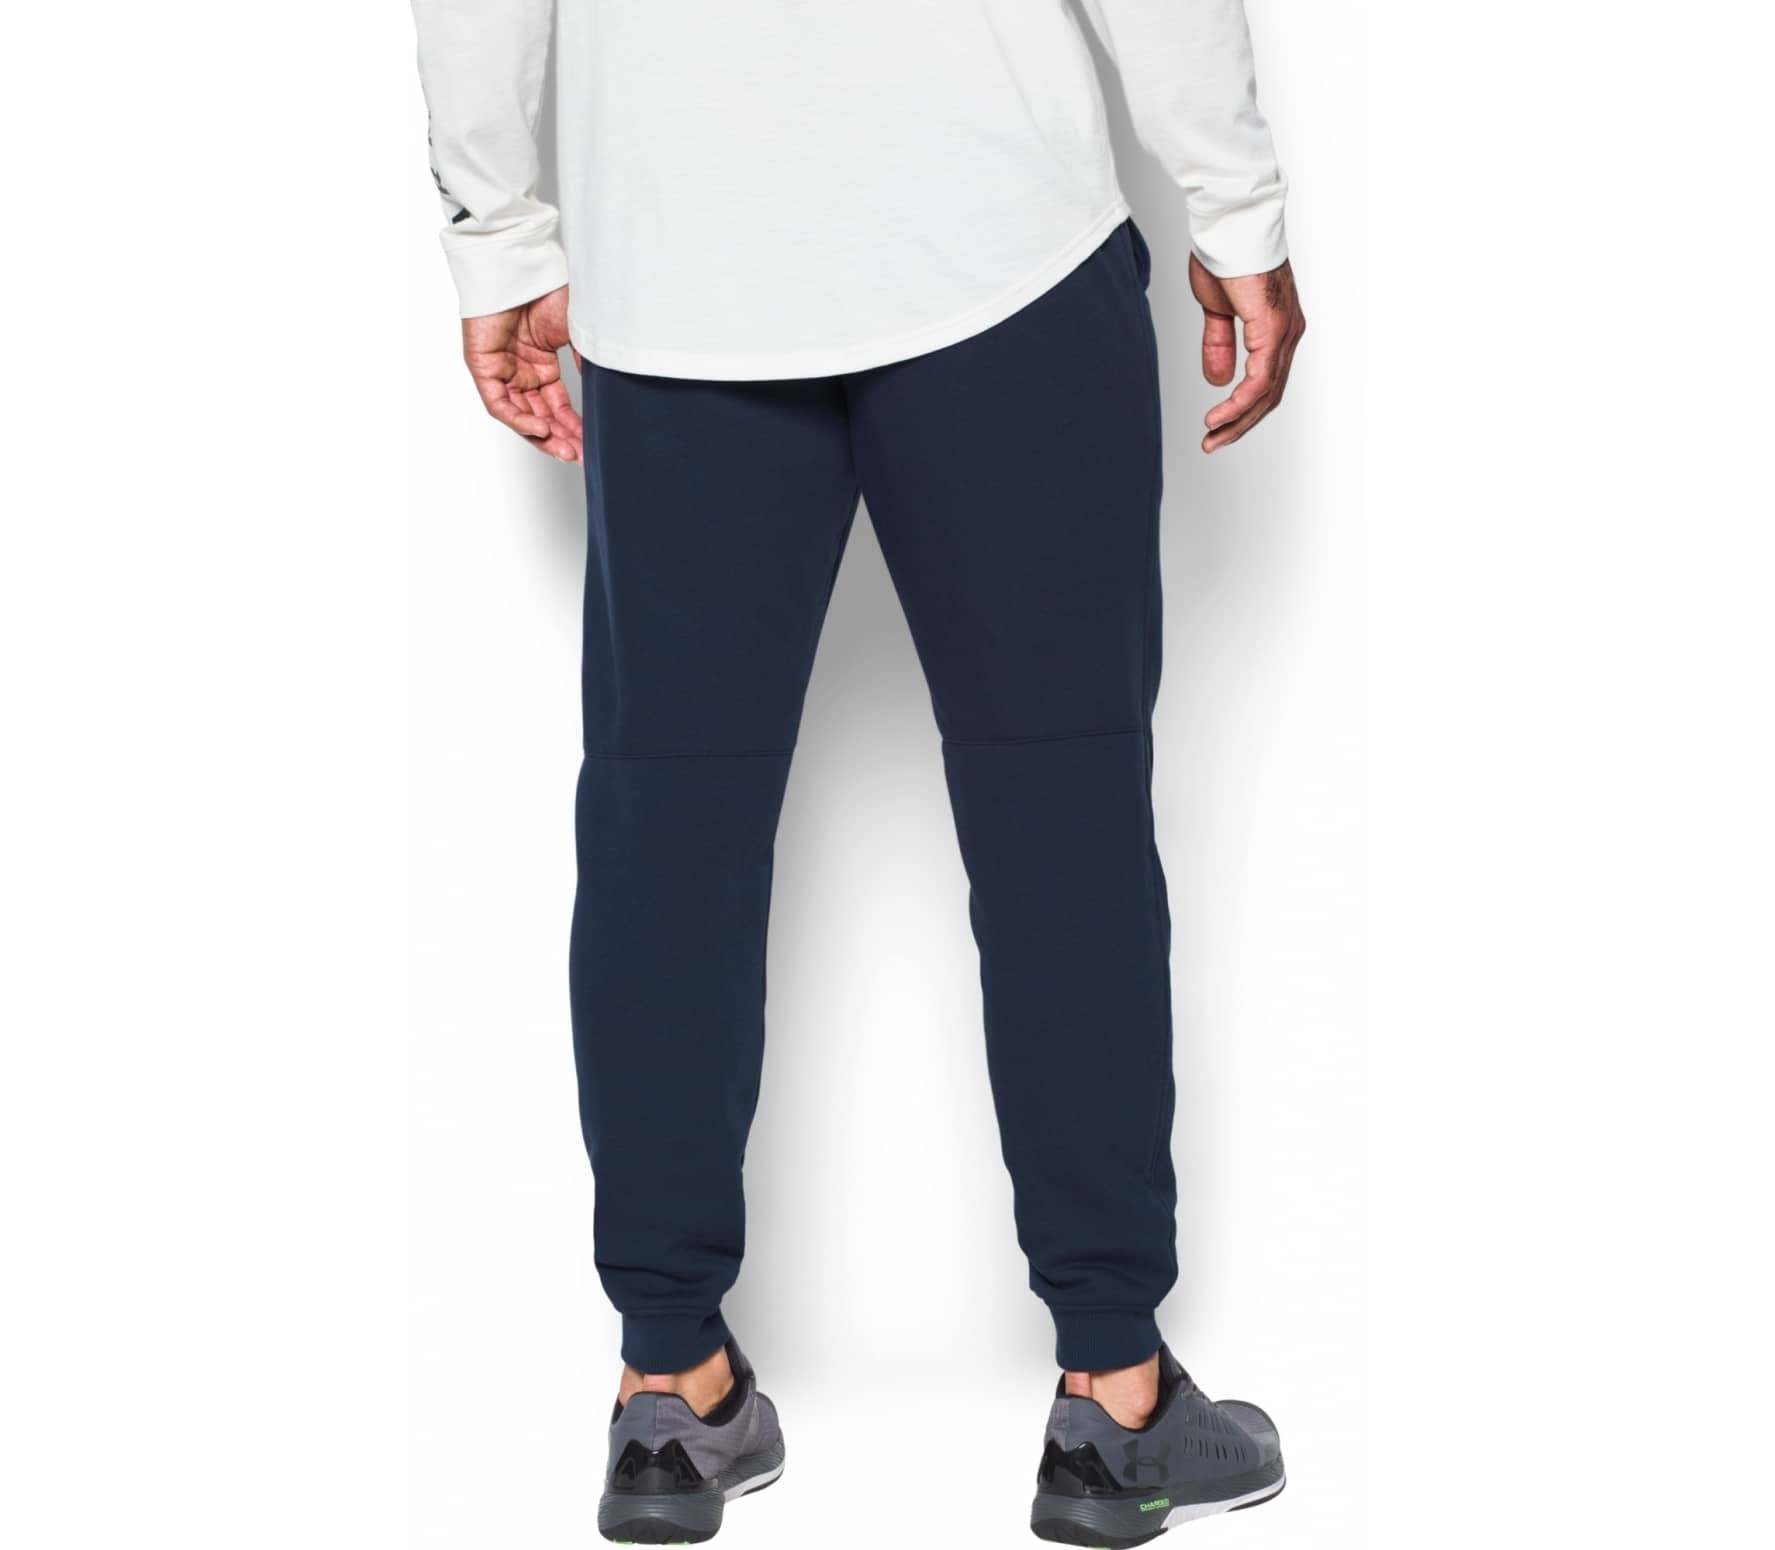 new product big clearance sale 100% top quality Under Armour Rival Cotton Jogger Men